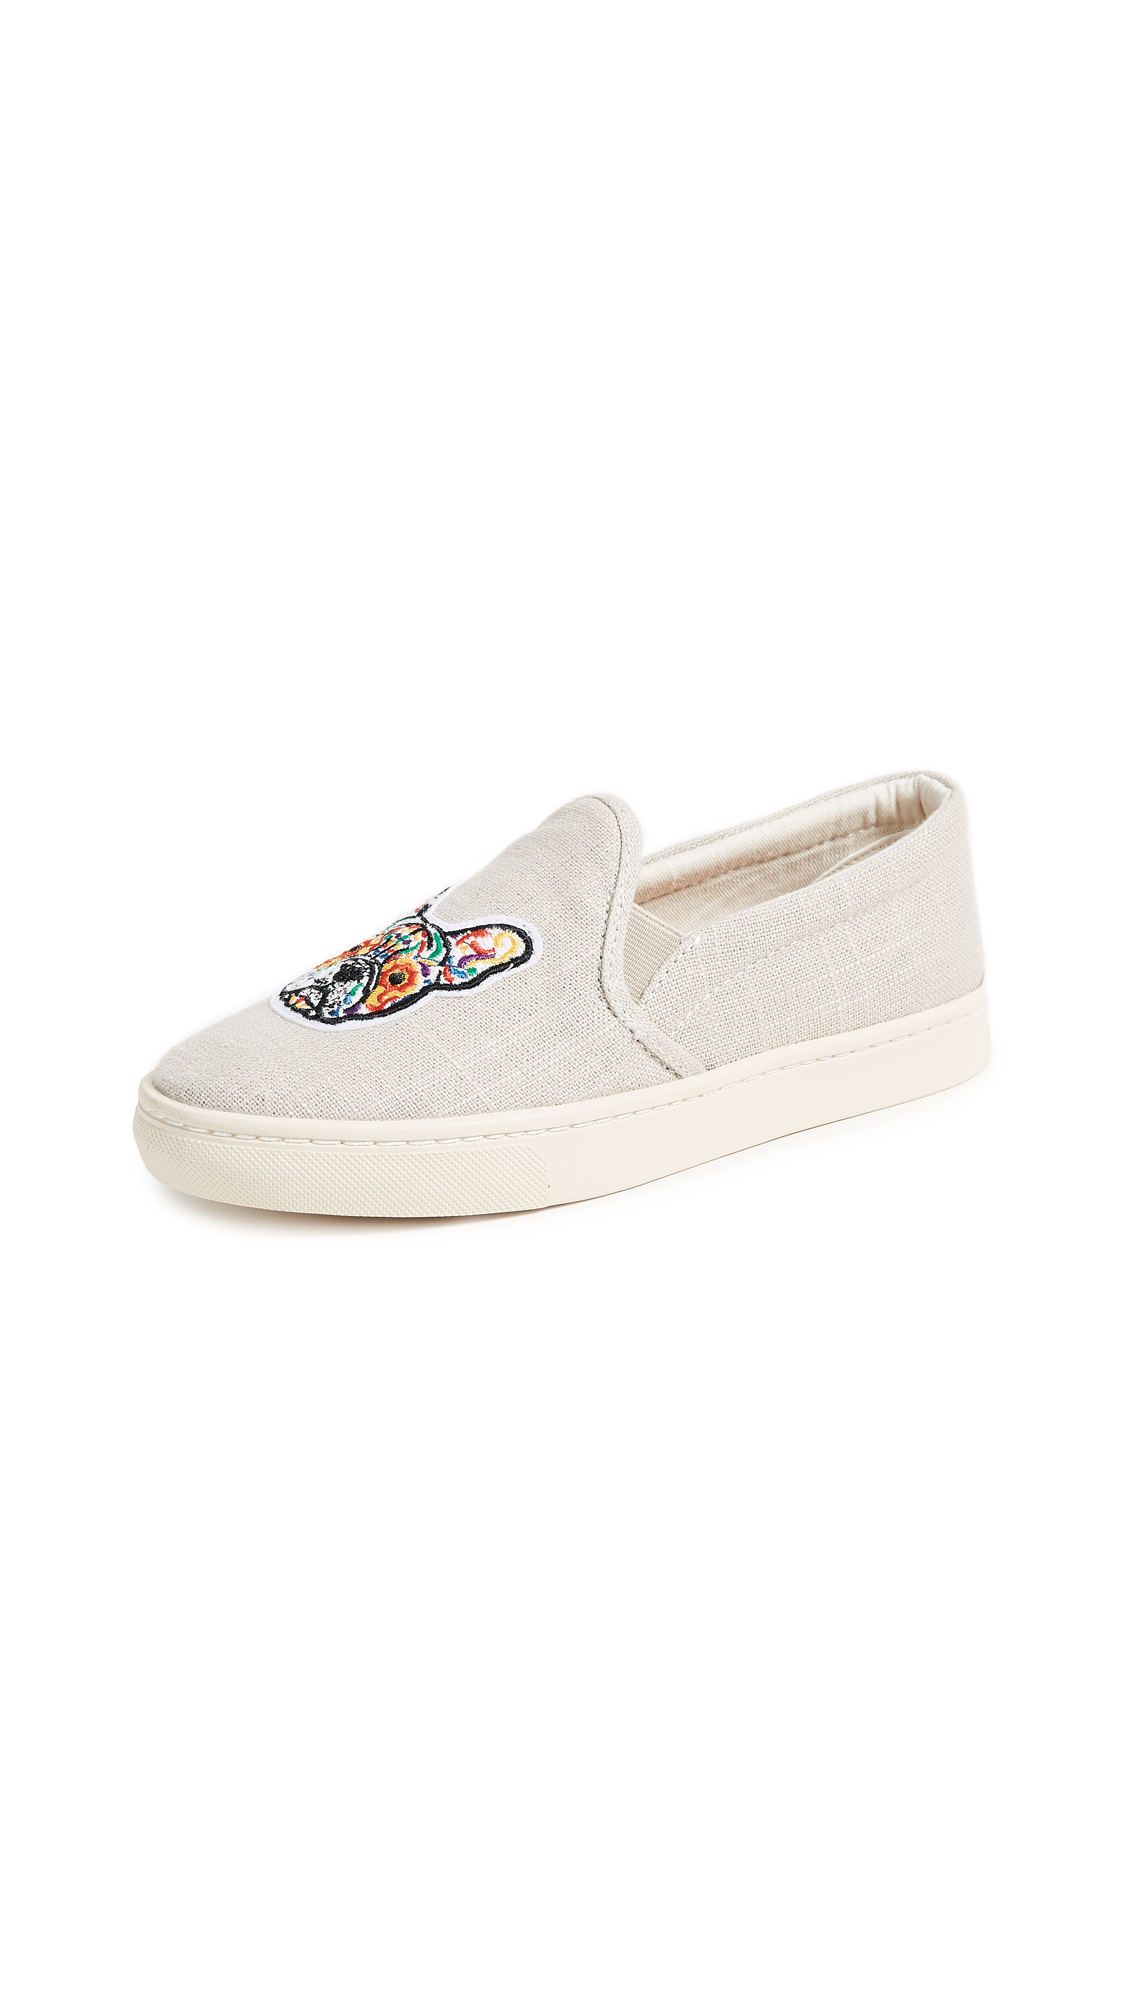 Soludos Frenchie Slip On Sneakers - Light Gray